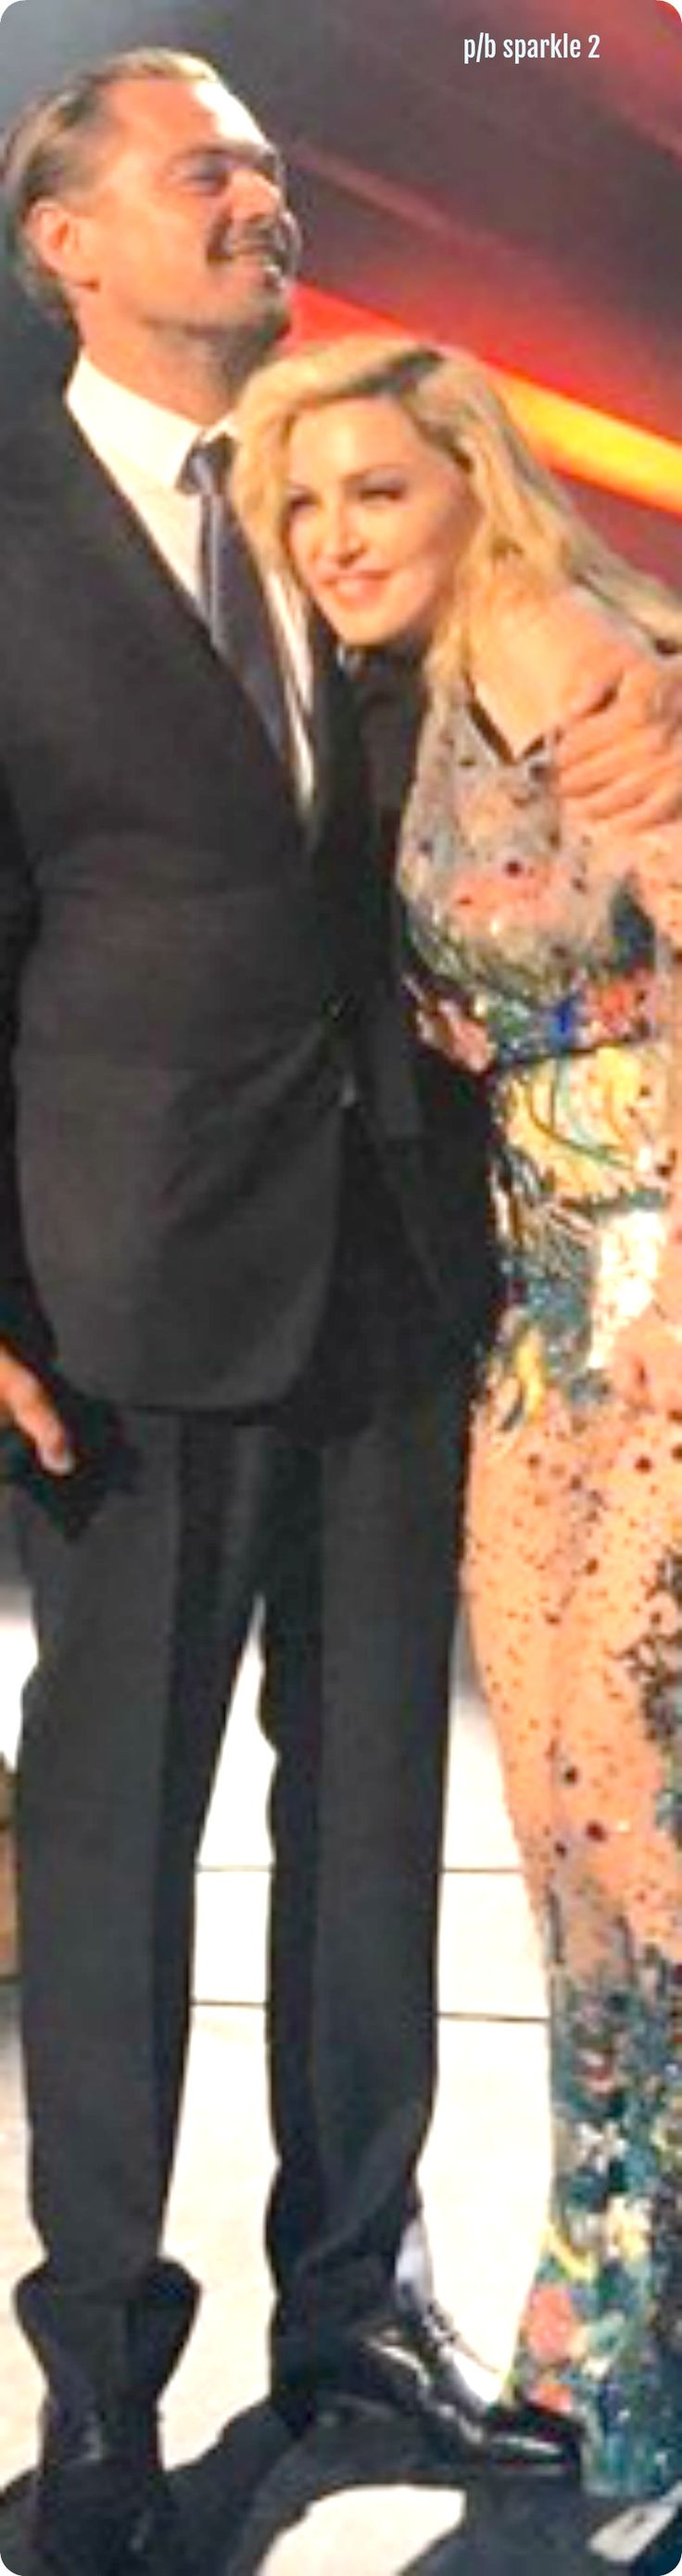 Leonardo DiCaprio and Madonna at the Leonardo DiCaprio Foundation Gala in St. Tropez, France, July 2017